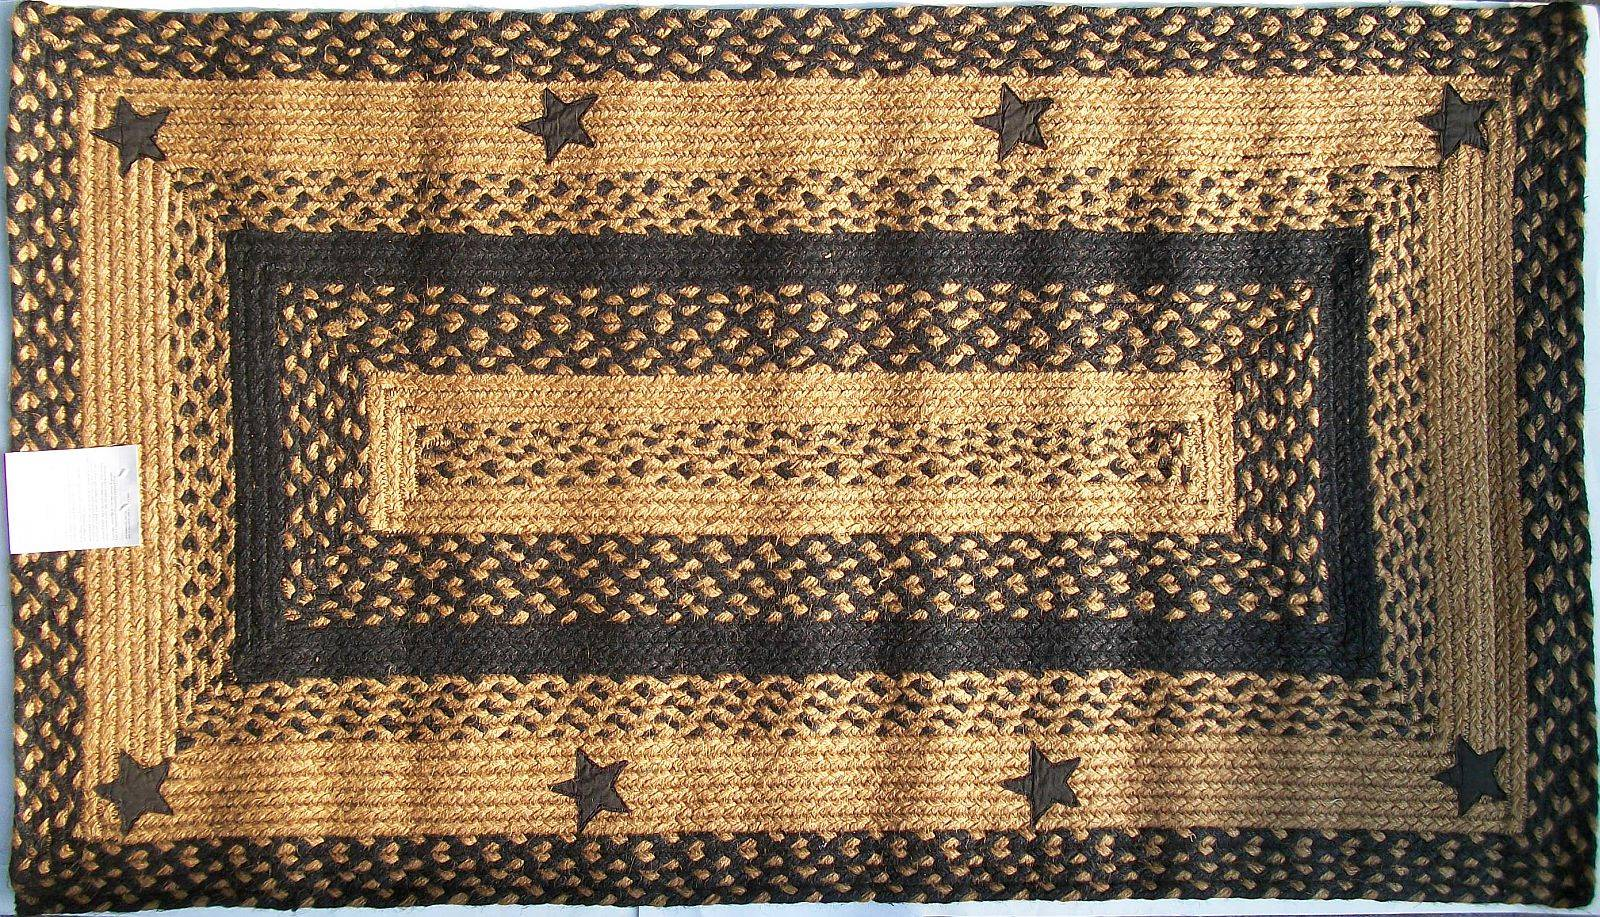 Ihf applique star black tan braided jute rug rustic primitive country home decor ebay - Rugs and home decor decor ...